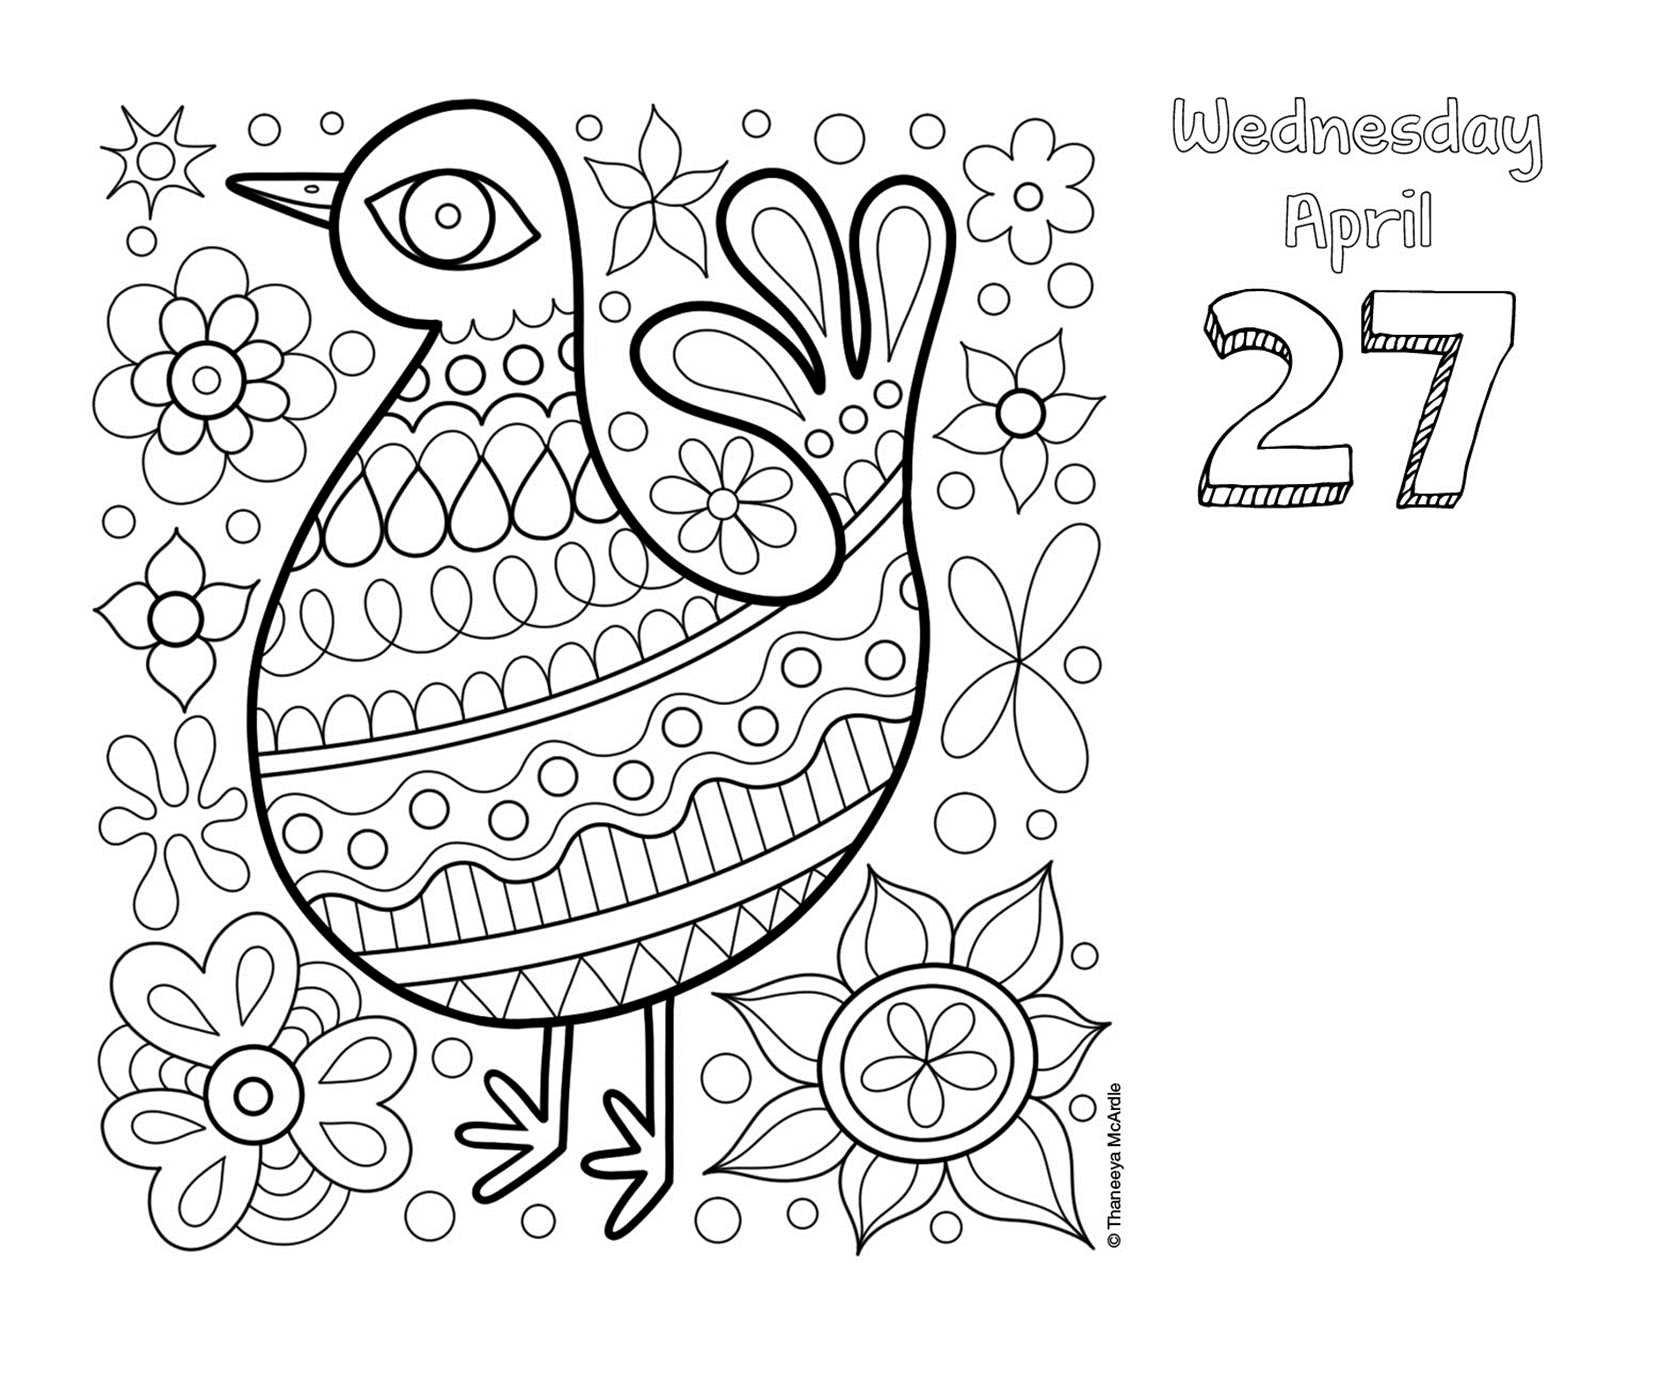 Posh Coloring 2016 Day to Day Calendar For Fun & Relaxation